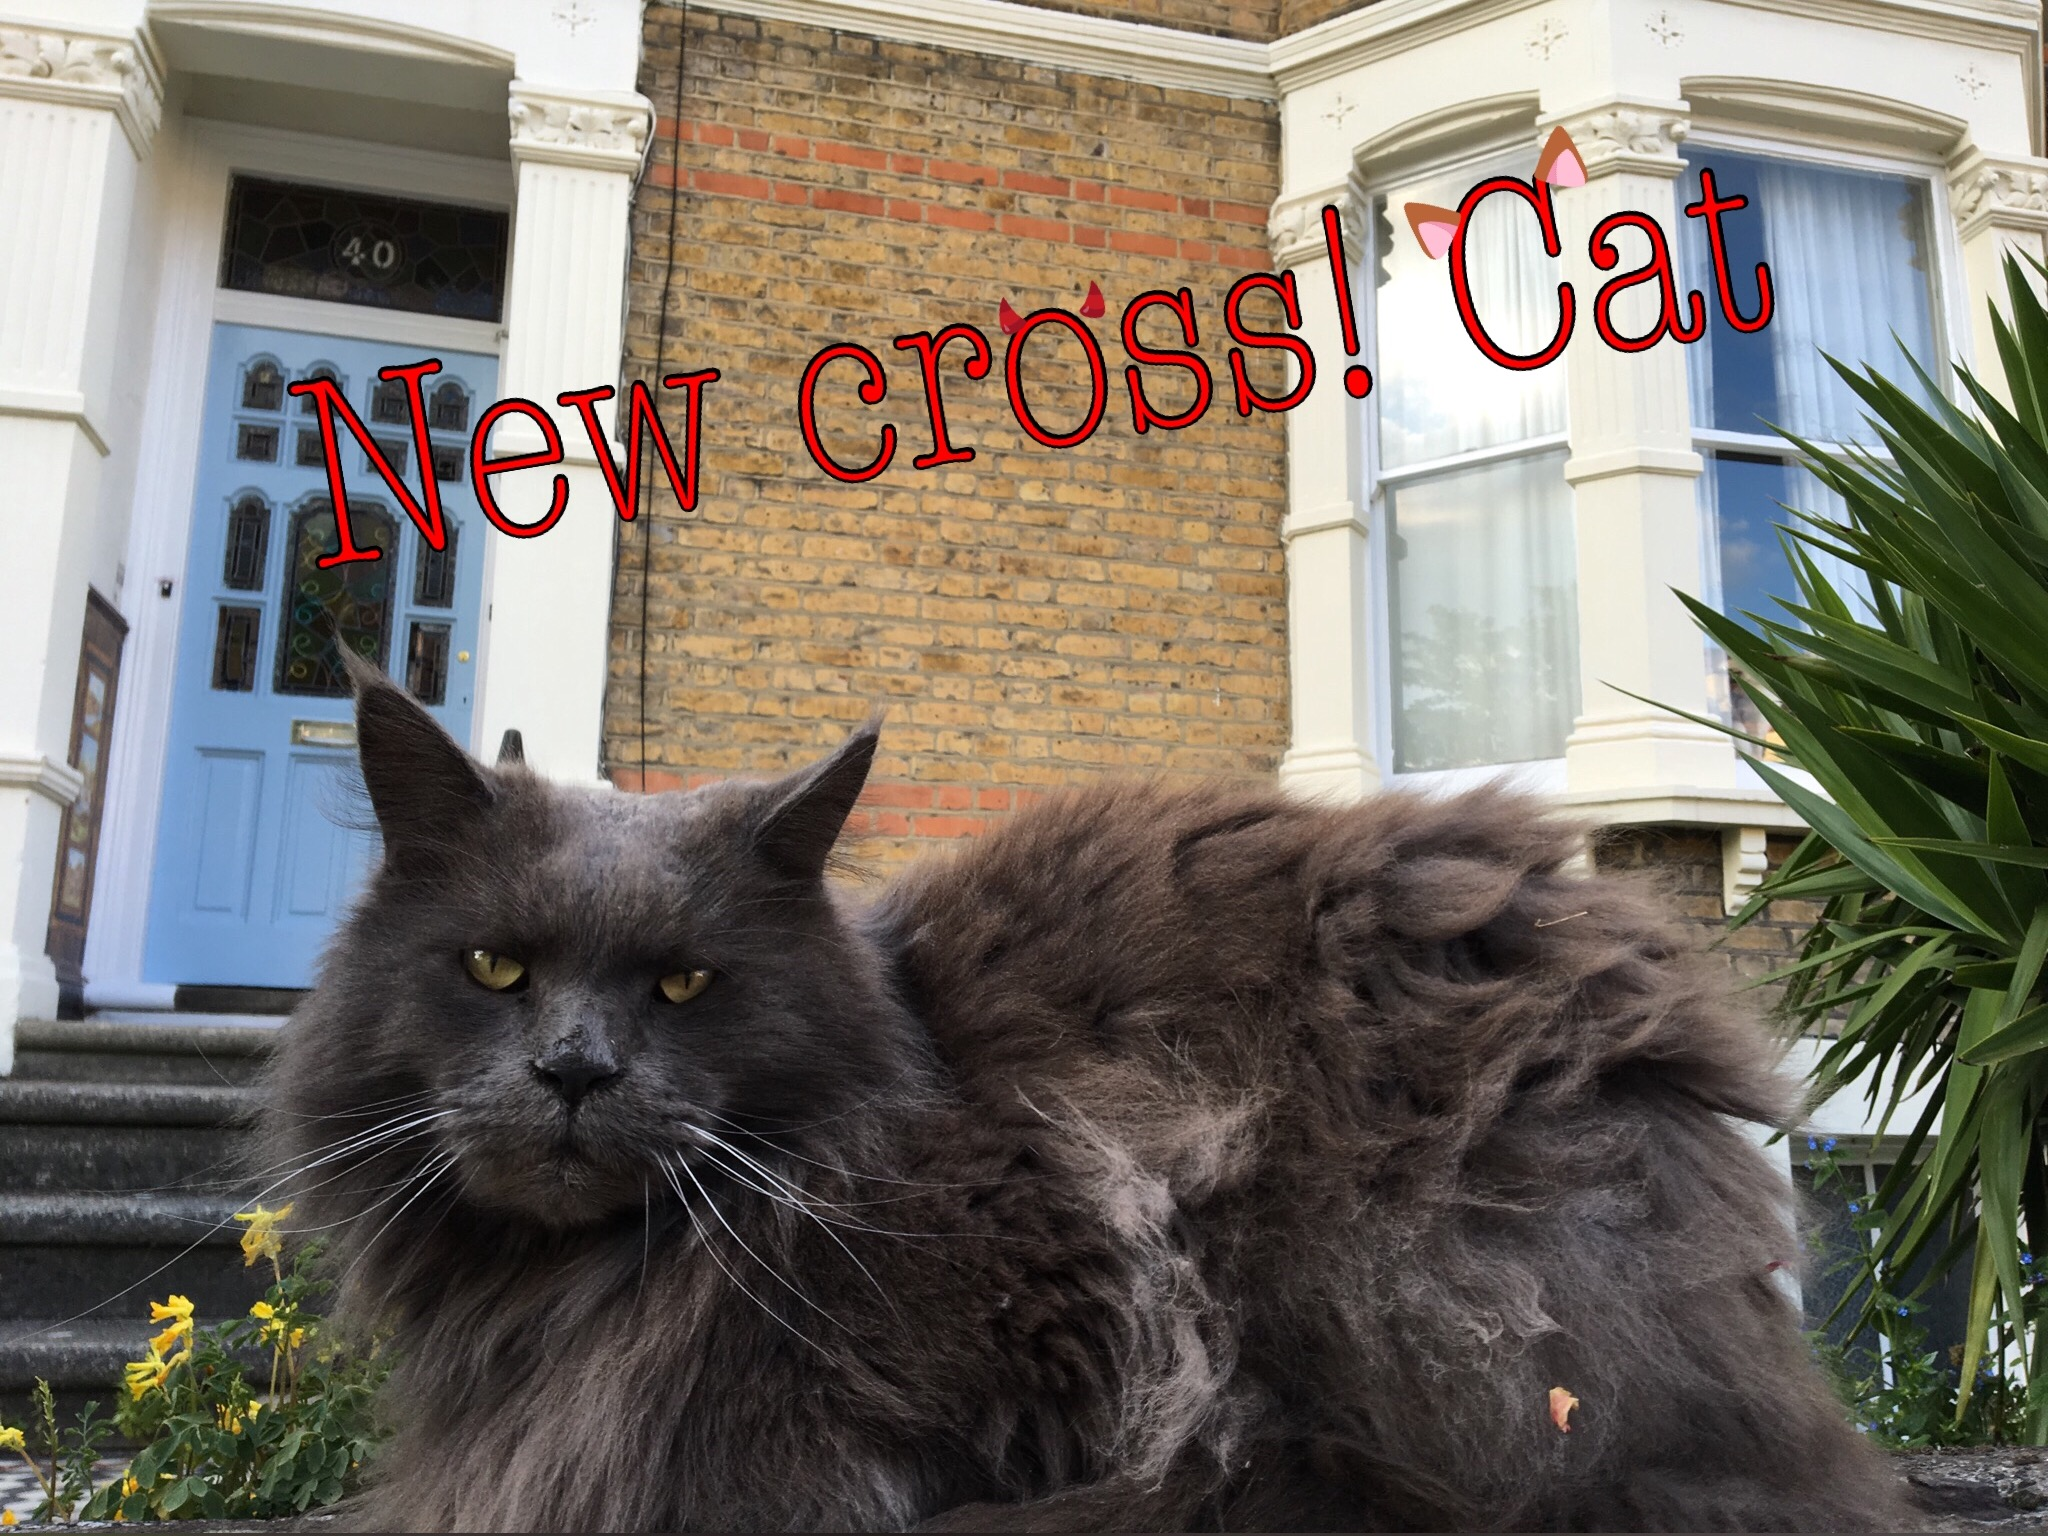 Flynn Richards_New Cross Cat.jpg